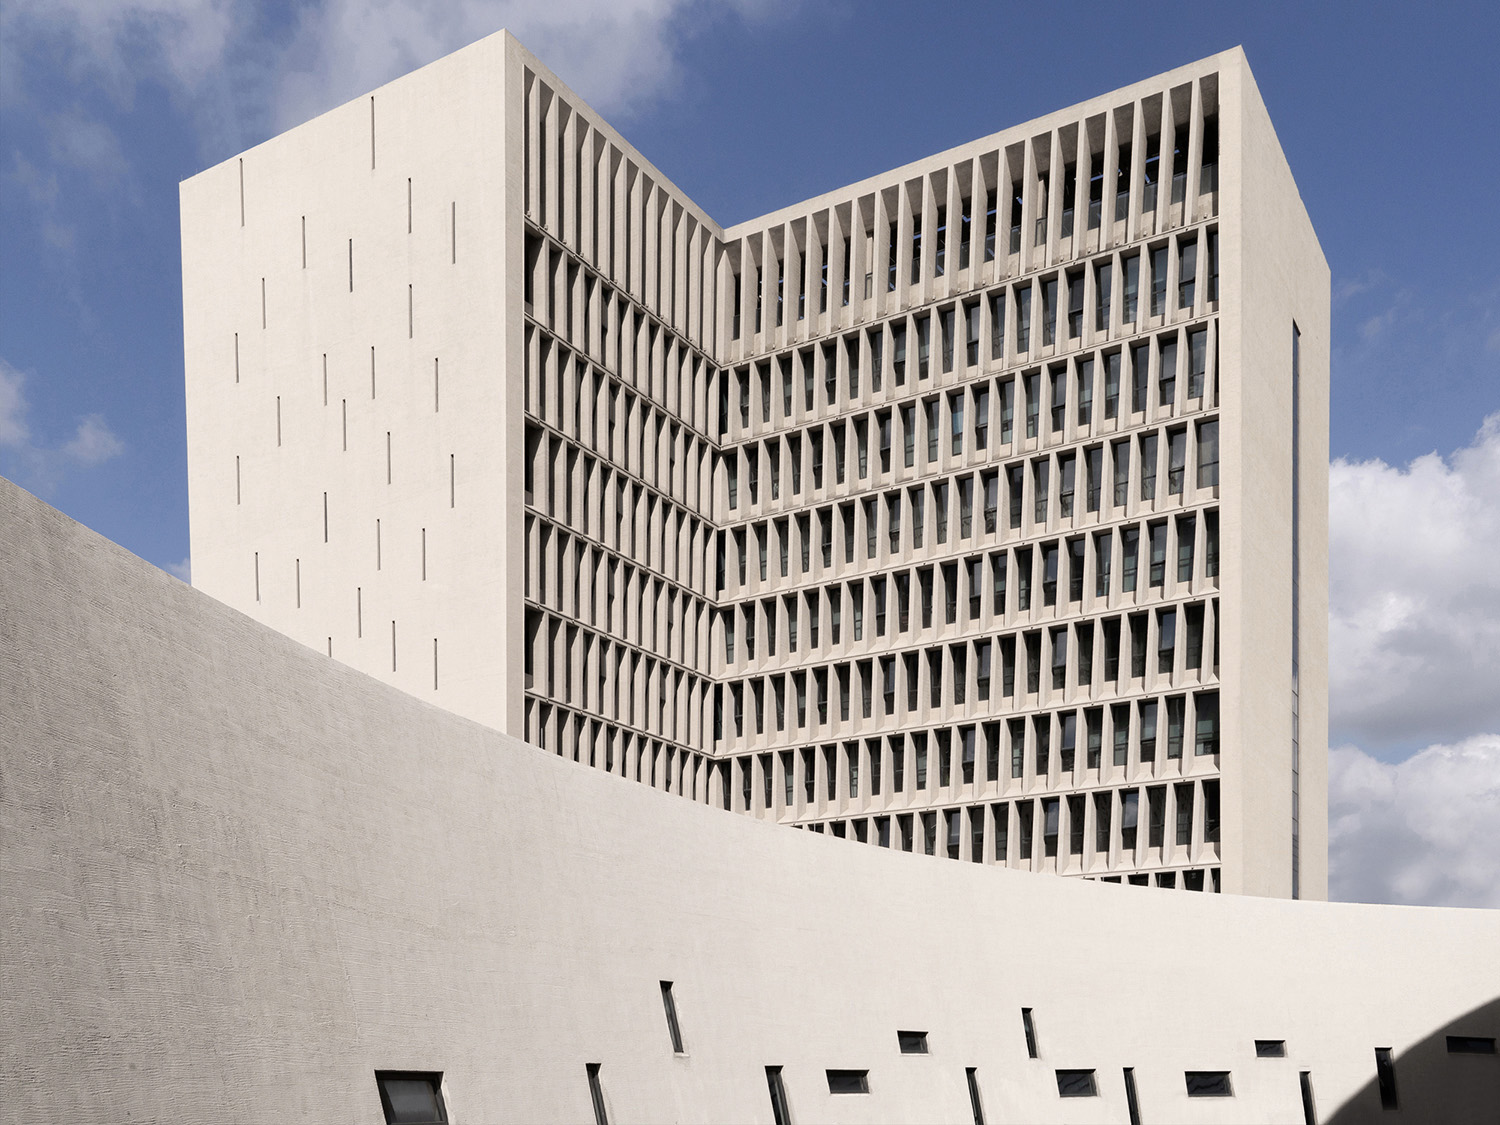 The surface of the concrete building adopts traditional plastering technology to inherit the cultural heritage of the city. Schran Images